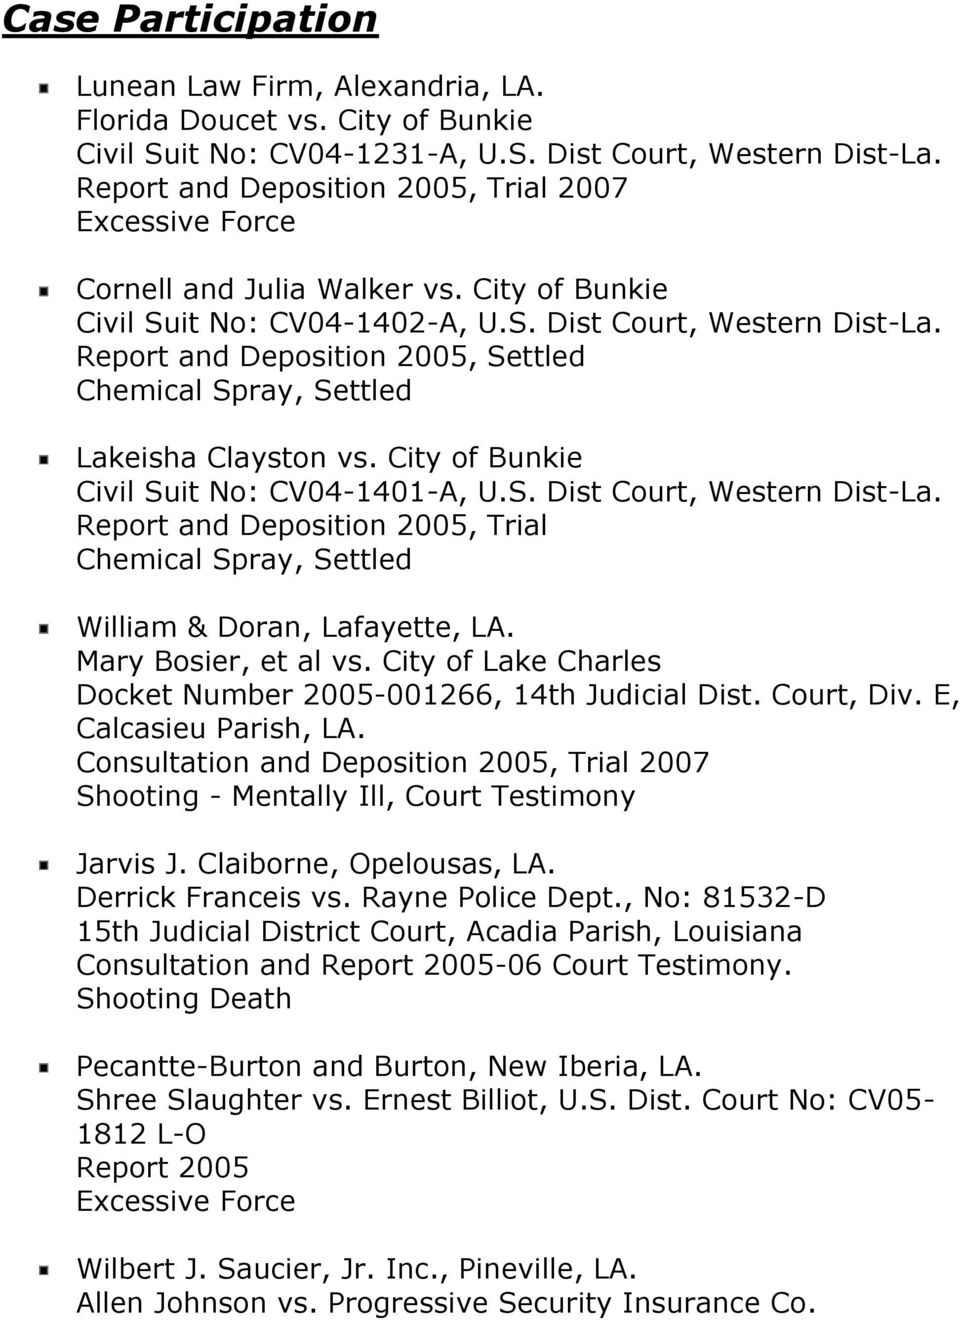 Report and Deposition 2005, Settled Chemical Spray, Settled Lakeisha Clayston vs. City of Bunkie Civil Suit No: CV04-1401-A, U.S. Dist Court, Western Dist-La.